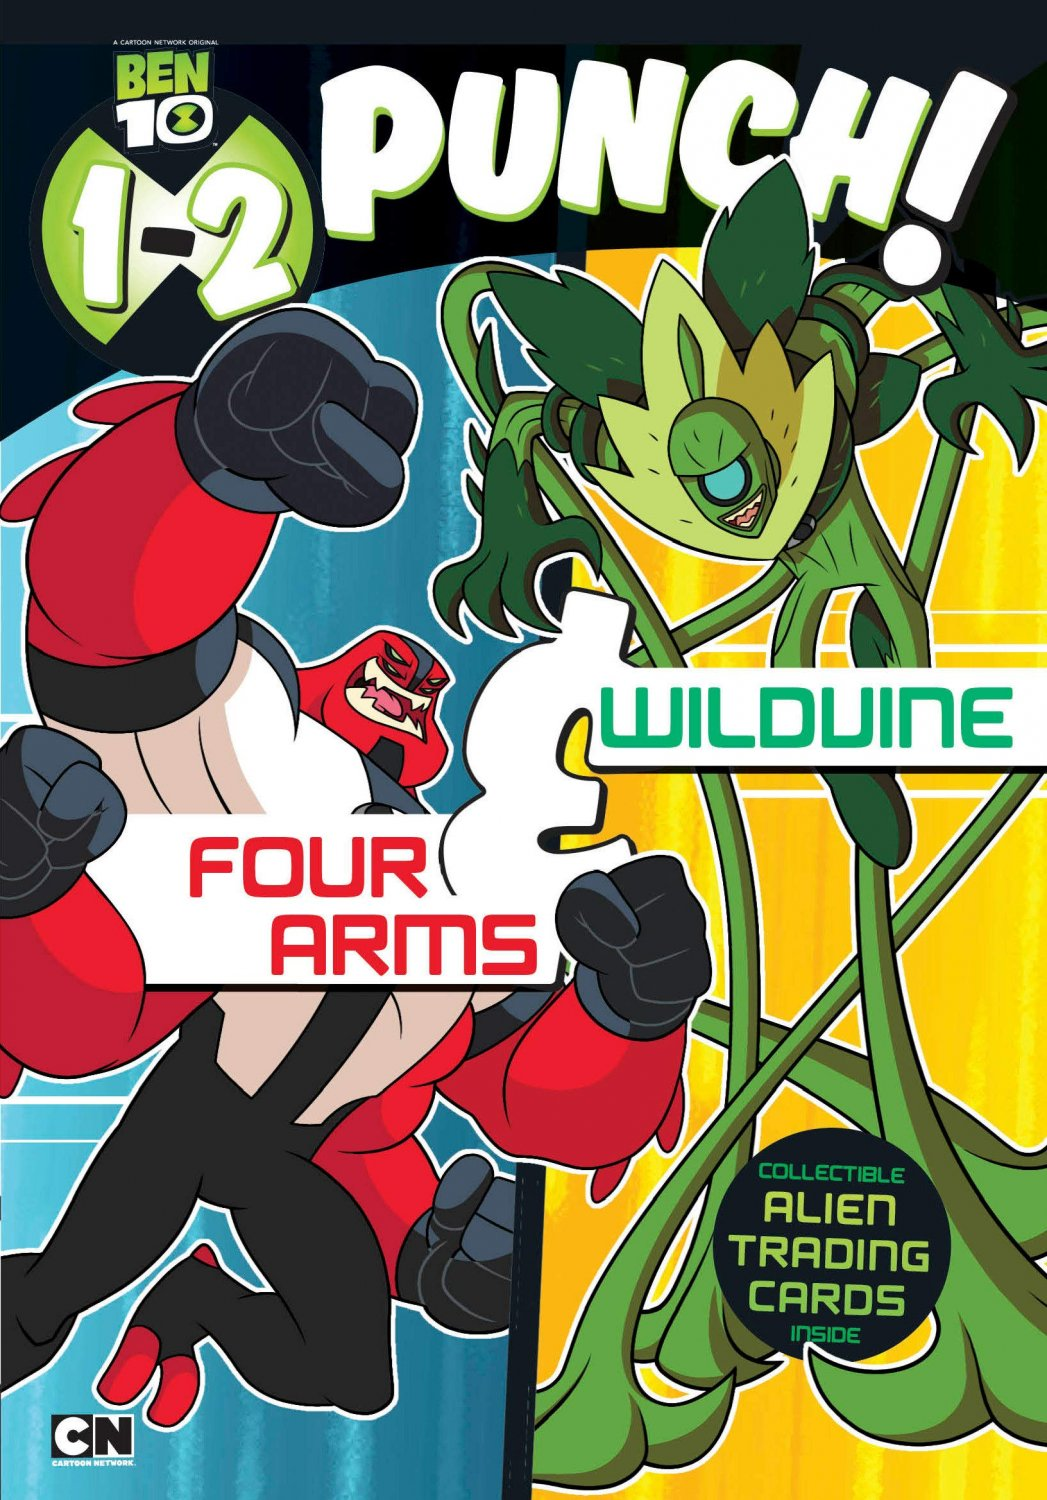 1-2 Punch: Four Arms and Wildvine (Ben 10)